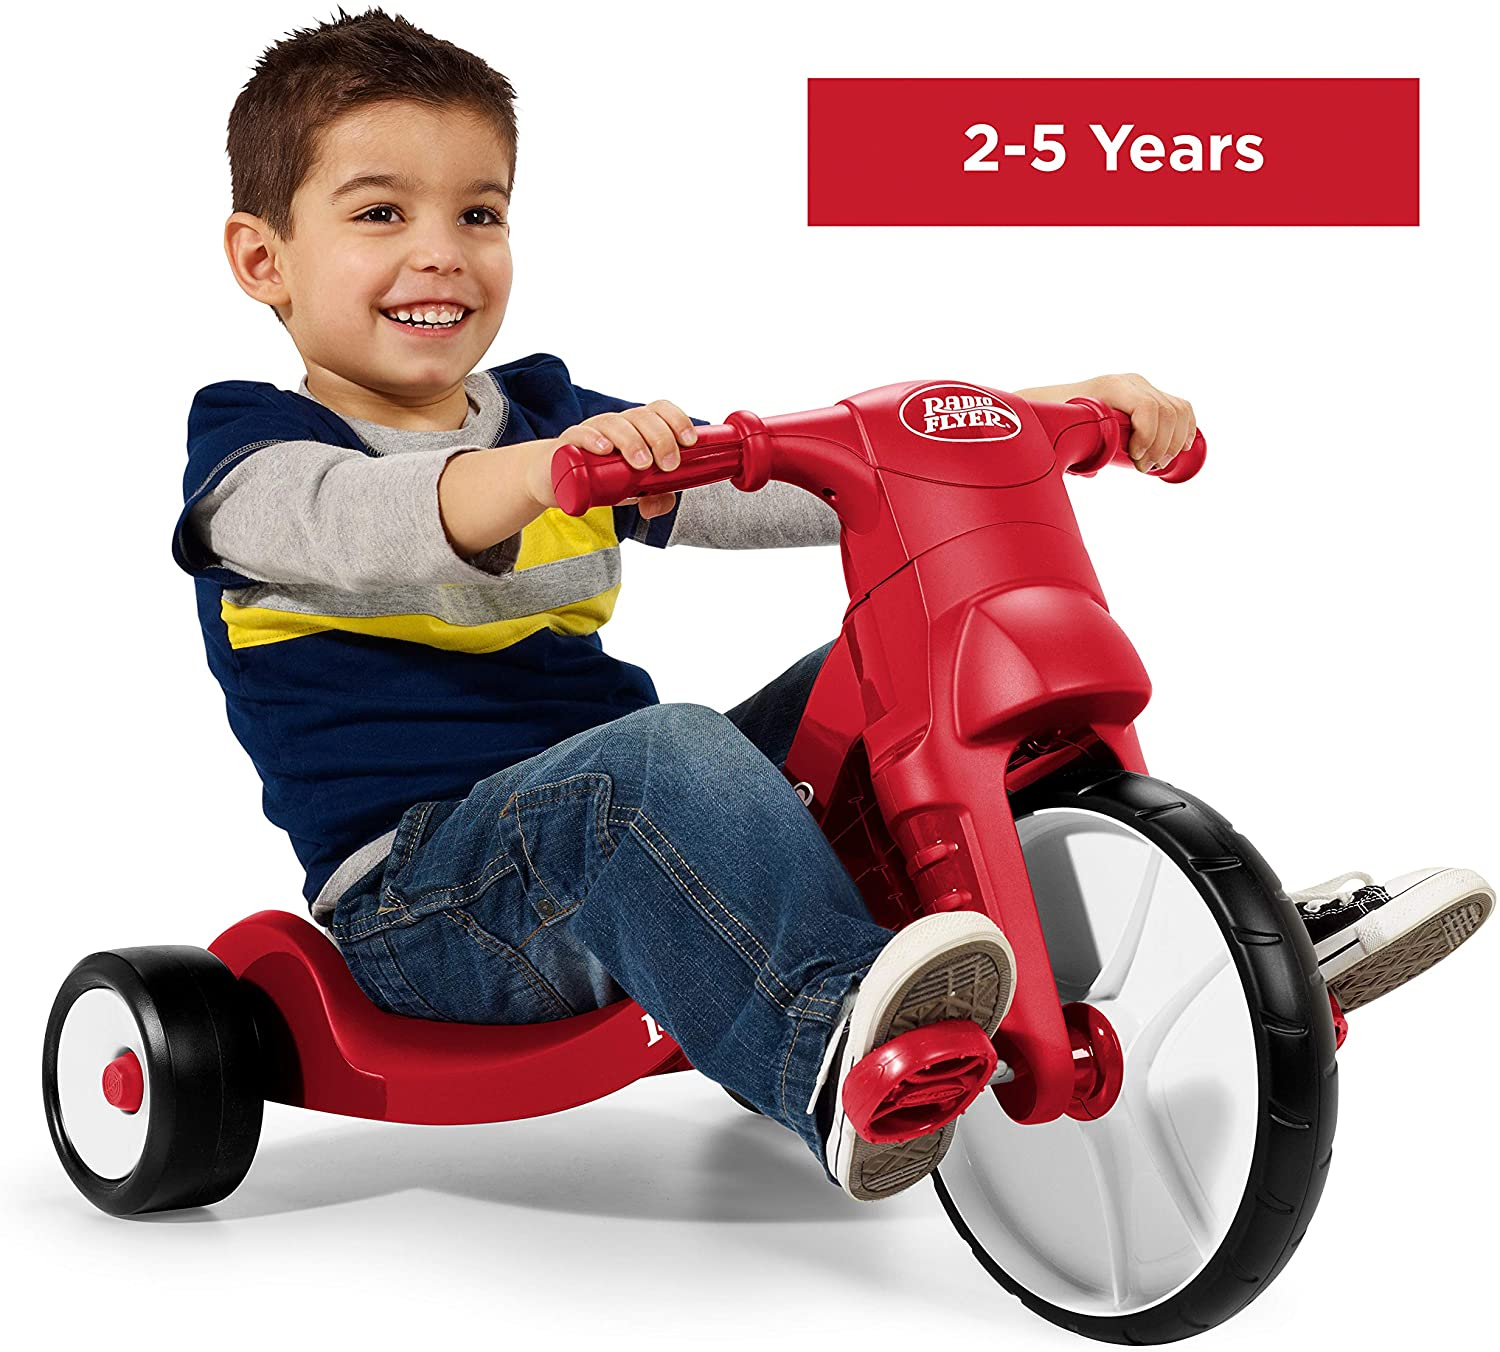 Radio Flyer Junior Flyer Trike, Outdoor Toy for Kids, Ages 2-5, Multi/None, ONE SIZE: Toys & Games